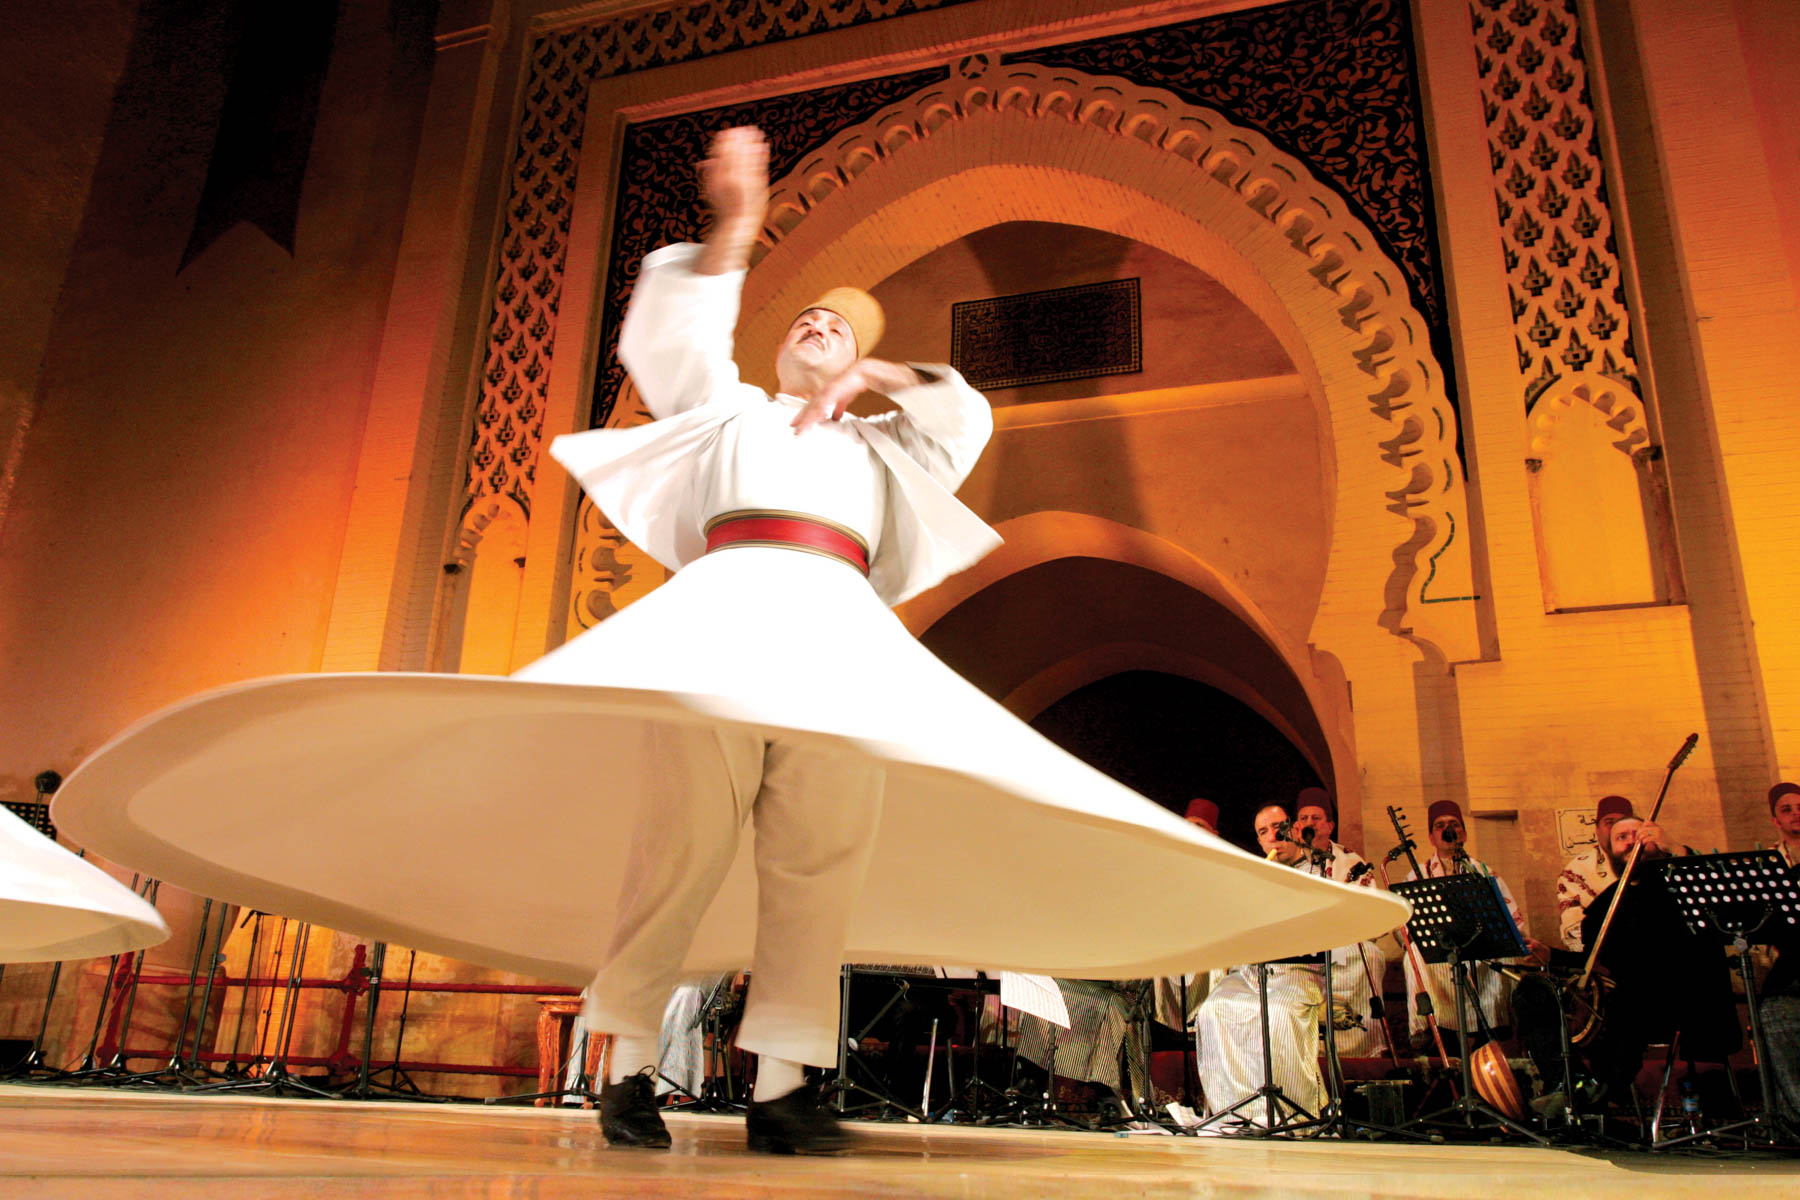 The World Sacred Music Festival attracts performers from across the globe